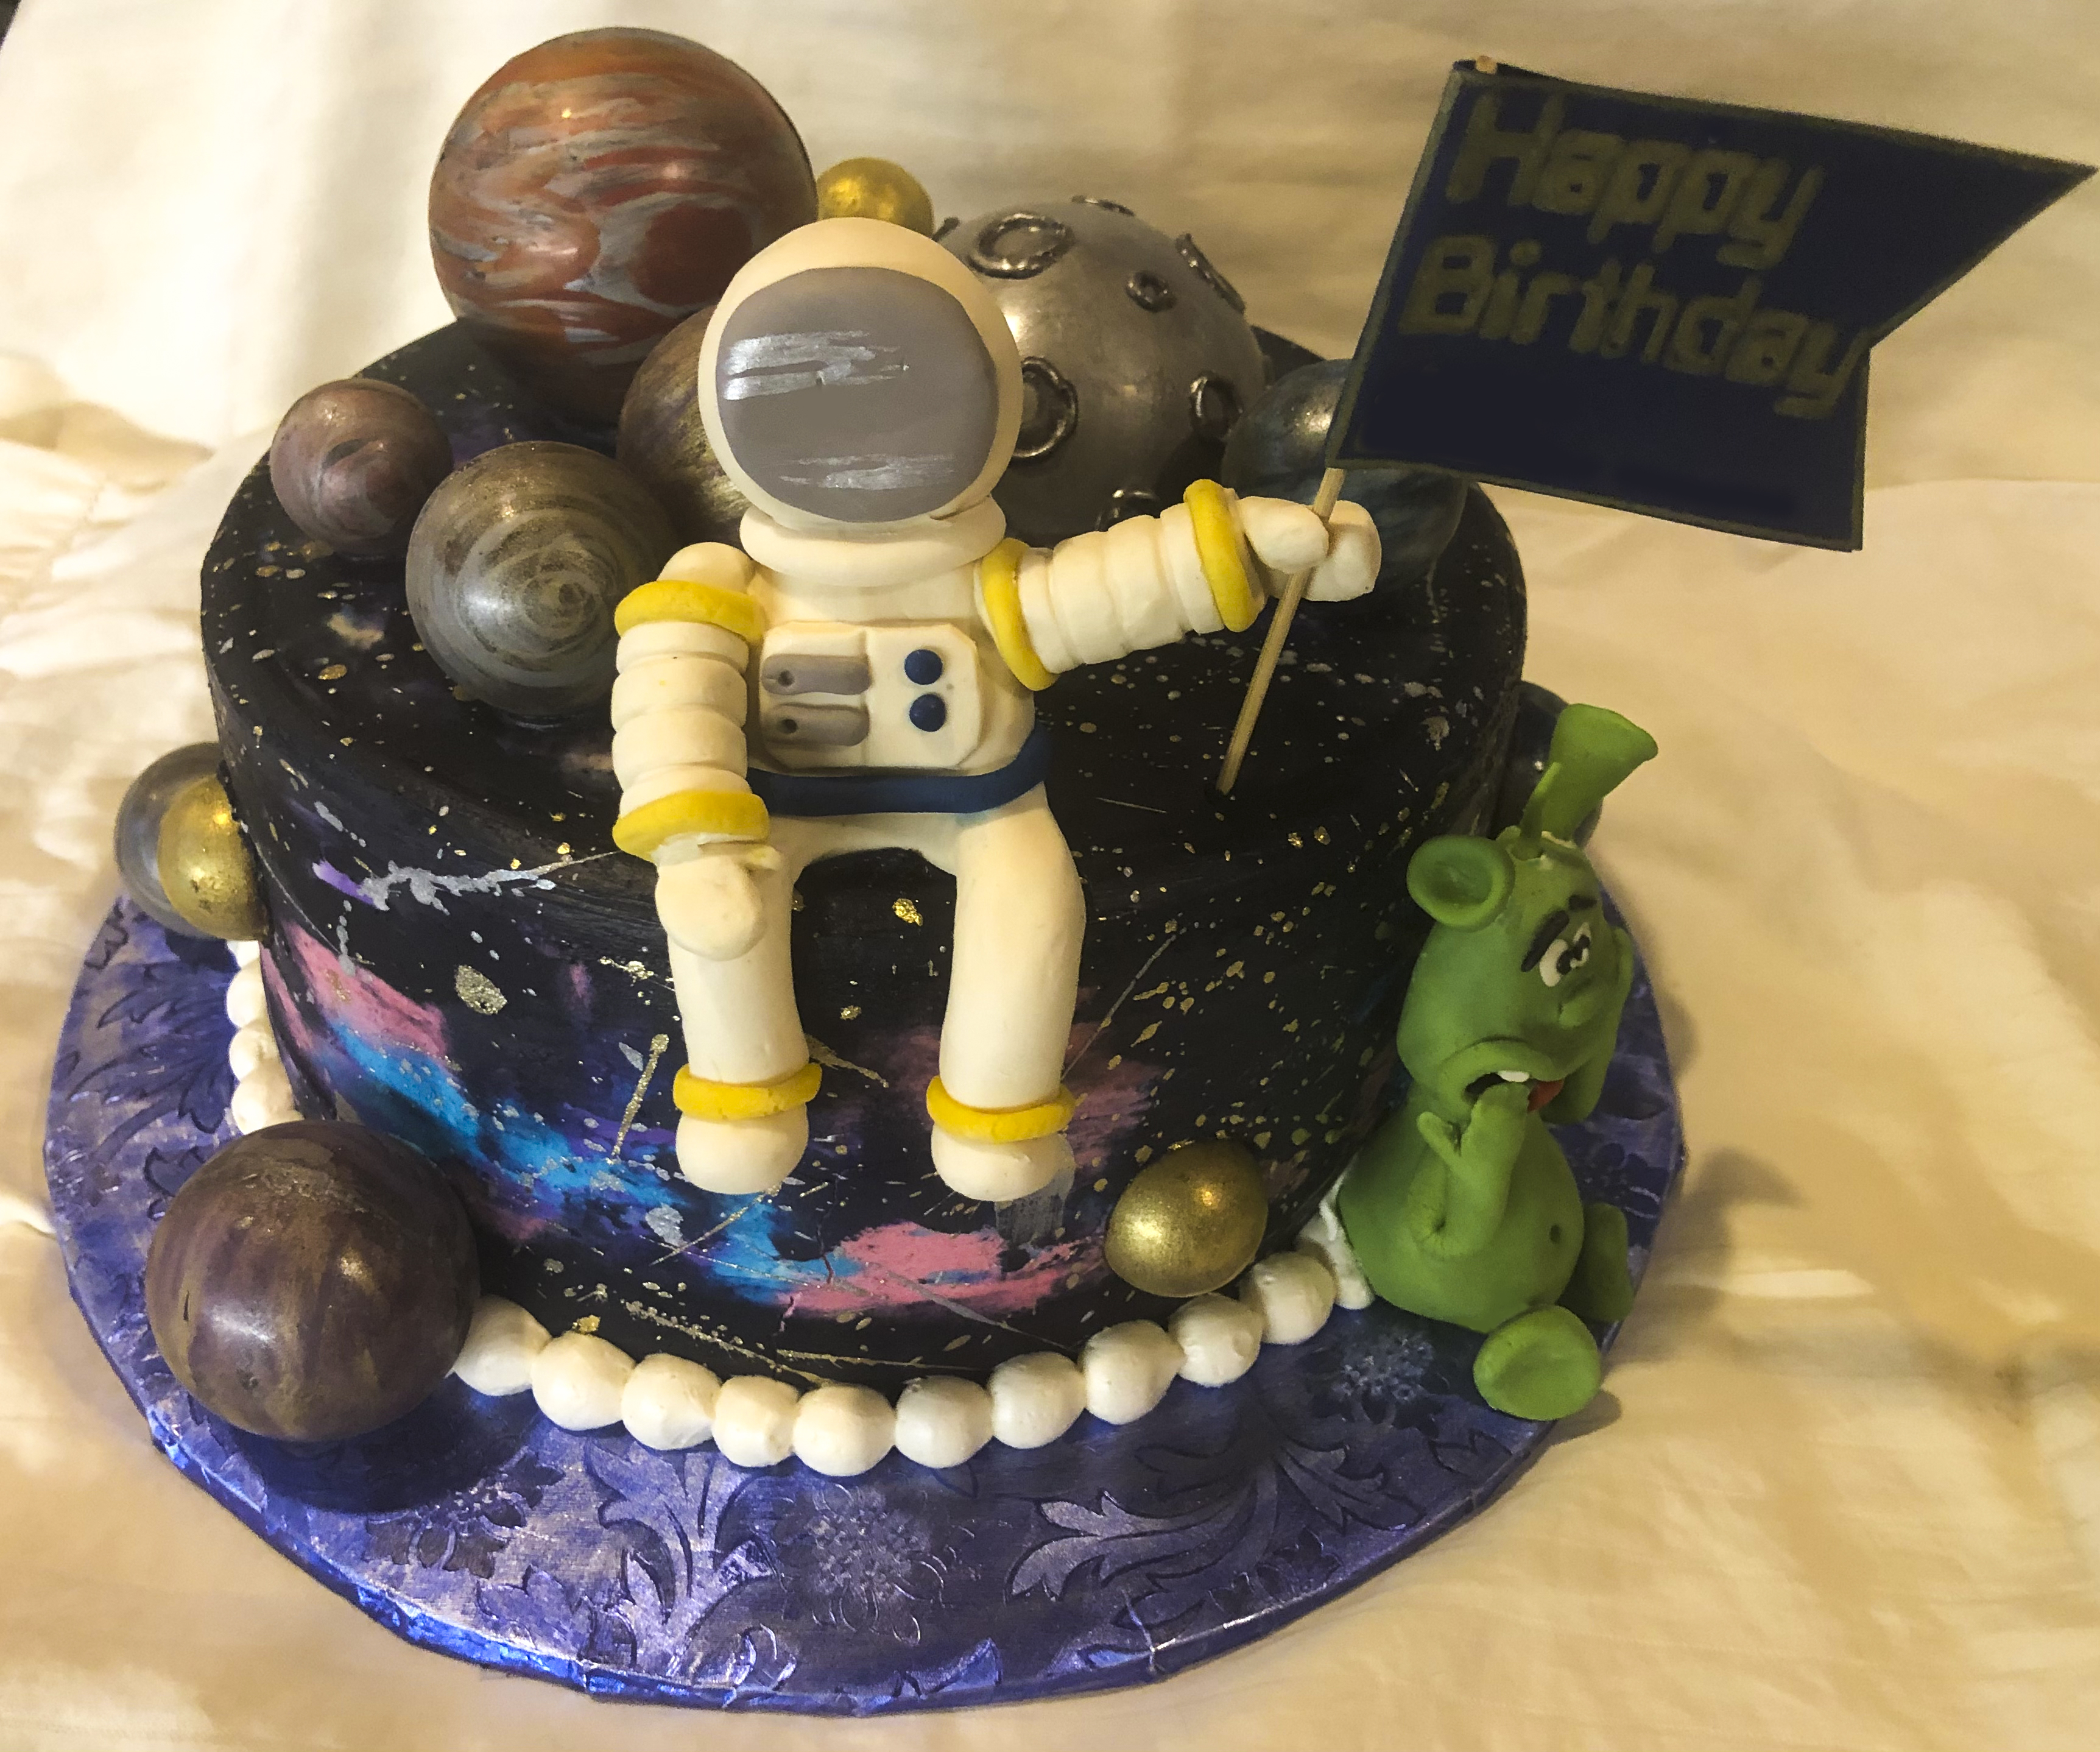 Space Birthday cake for Cake4Kids